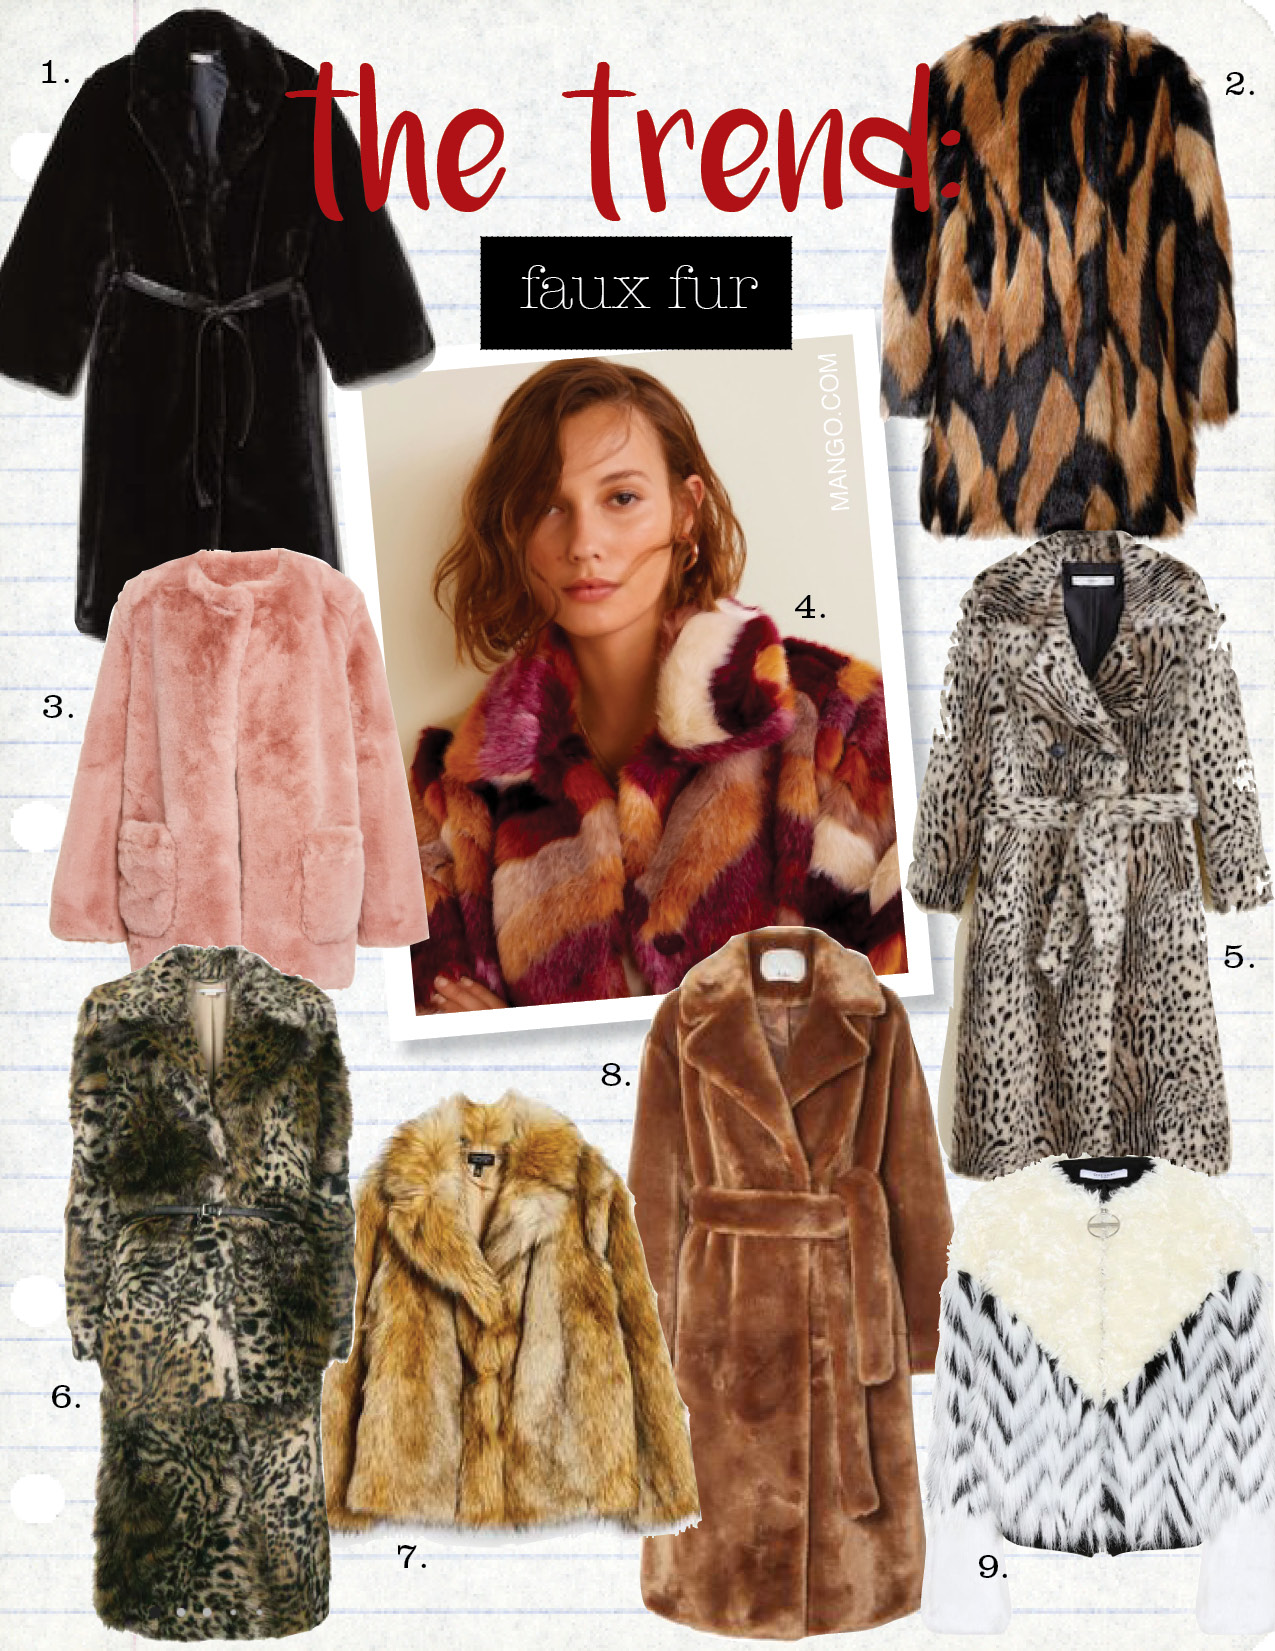 1. h&m faux fur coat, $129,  hm.com  2. givenchy faux fur coat, $3490,  barneys.com  3. apparis jessica collarless faux fur coat, $345,  modaoperandi.com  4. mango multicolor faux fur coat, $129,  mango.com  5. mango leopard faux fur coat, $229,  mango.com  6. stella maccartney leopard print faux fur coat, $2080,  farfetch.com  7. topshop vintage faux fur coat, $150,  topshop.com  8. tibi oversized faux shearling coat, $695,  net-a-porter.com  9. givenchy faux fur jacket, $3850,  mytheresa.com